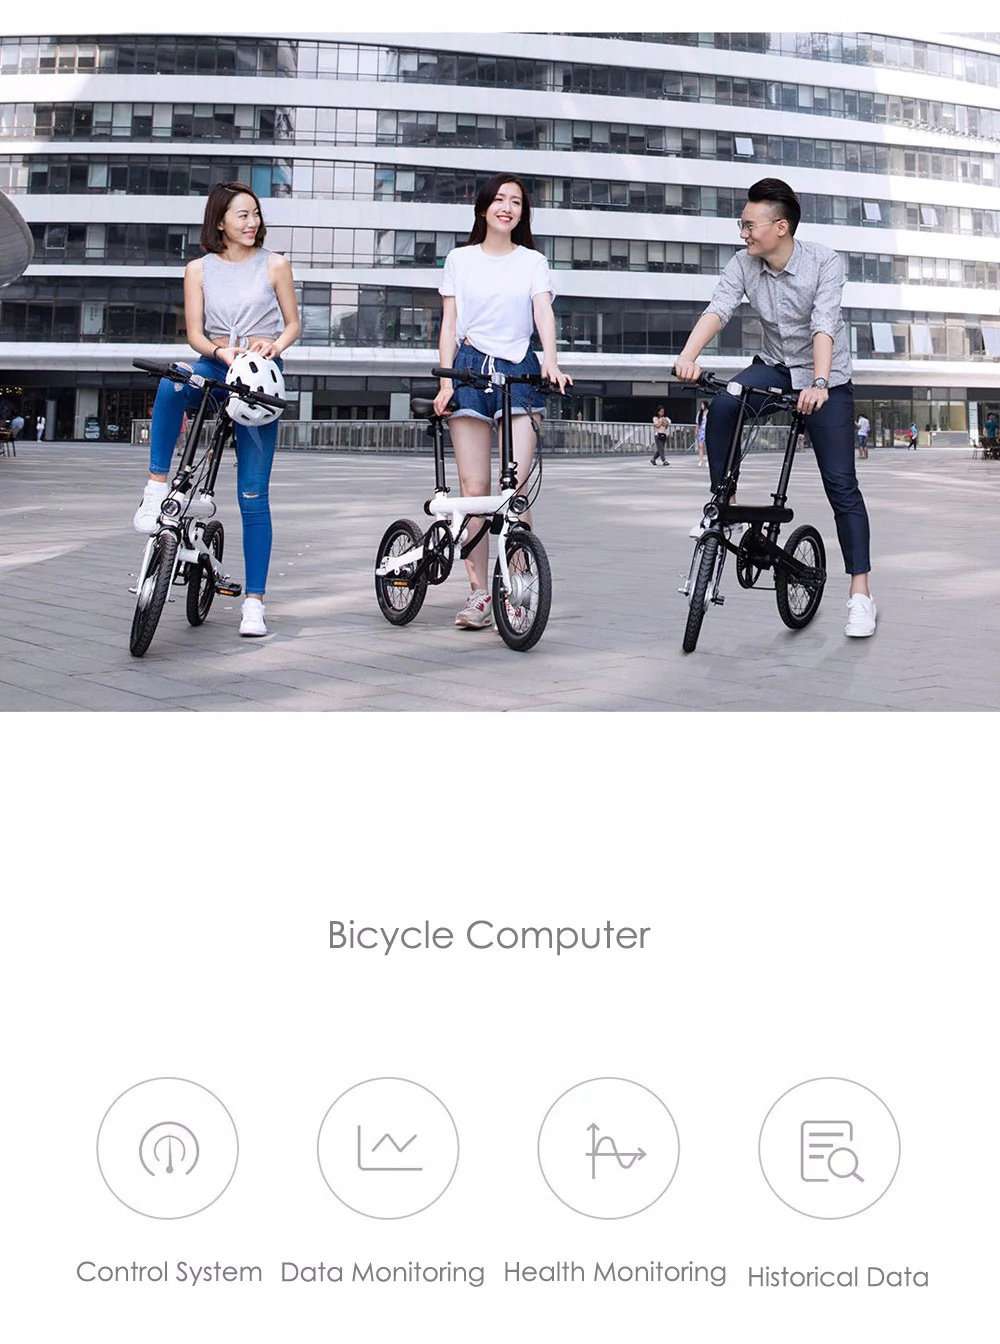 HTB1XV88FkCWBuNjy0Faq6xUlXXaC - 16inch Origina XIAOMI electrical bike Qicycle EF1 Mini electrical Ebike good folding  bike lithium battery mijia  CITY EBIKE